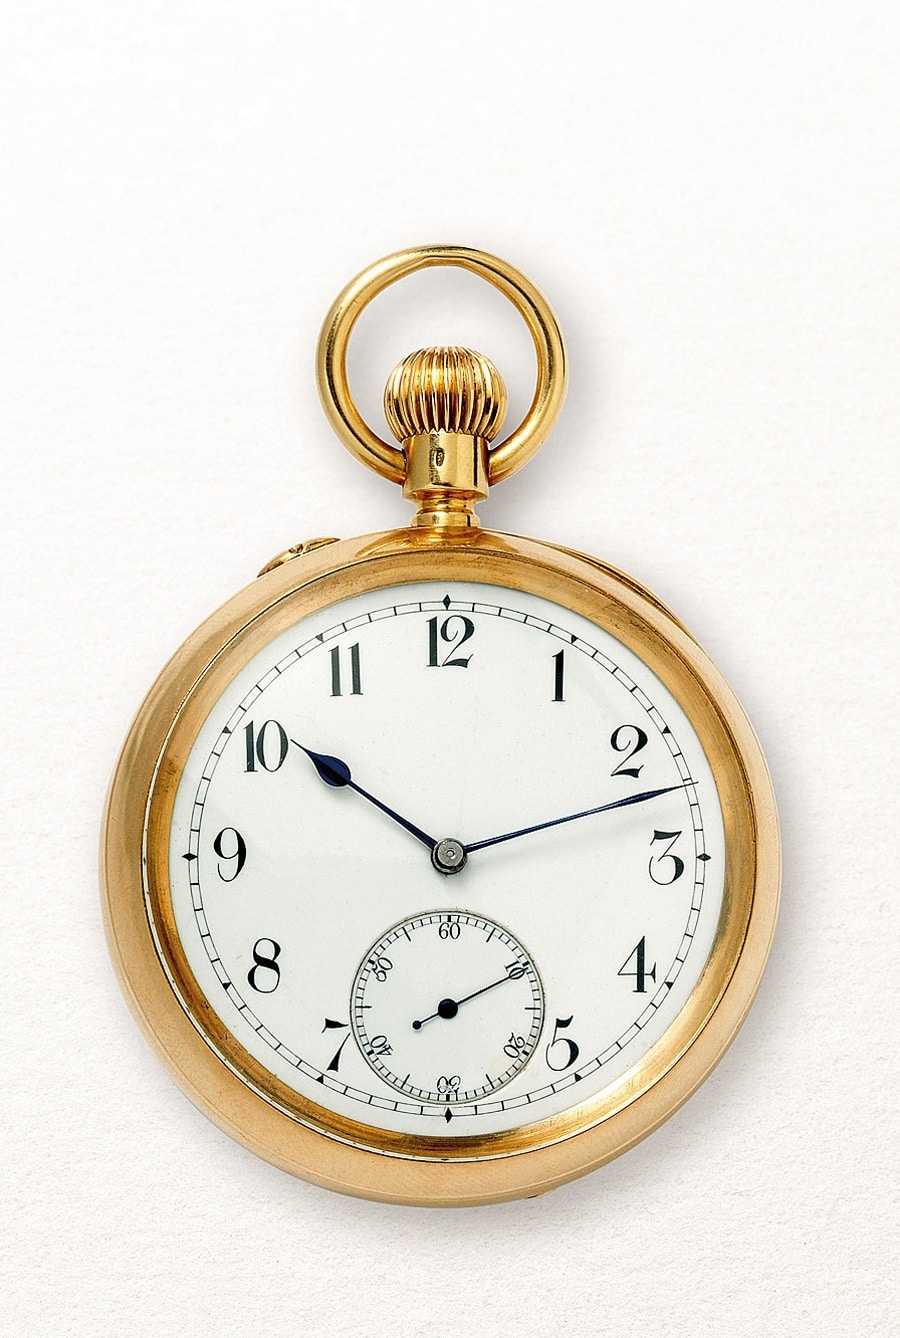 Baume & Mercier: Observatoriums-Tourbillon, 1892